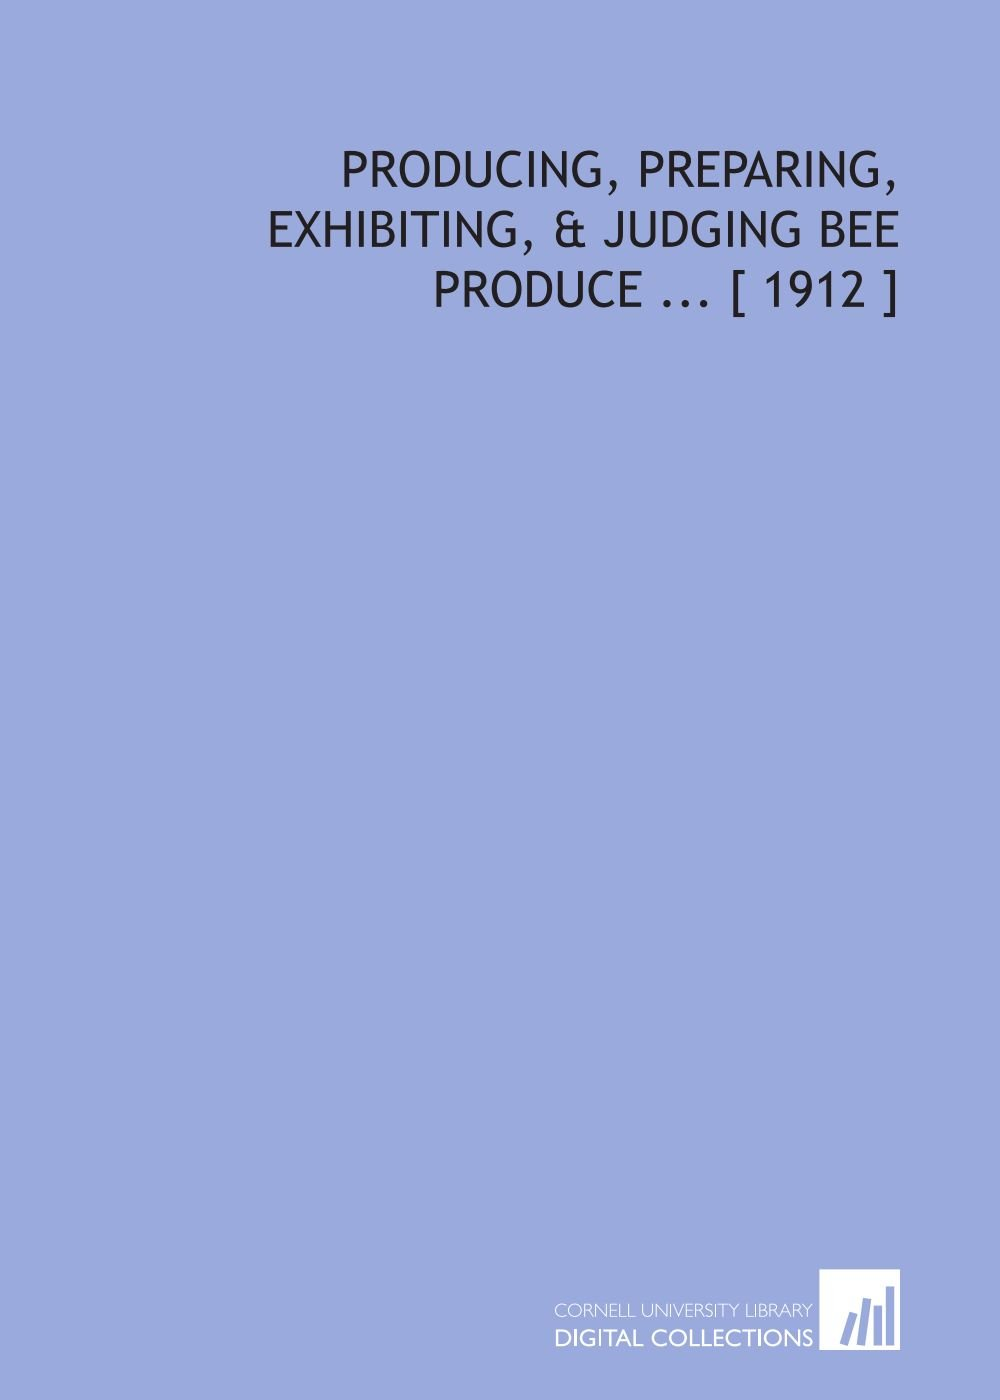 Read Online Producing, Preparing, Exhibiting, Judging Bee Produce [ 1912 ] PDF